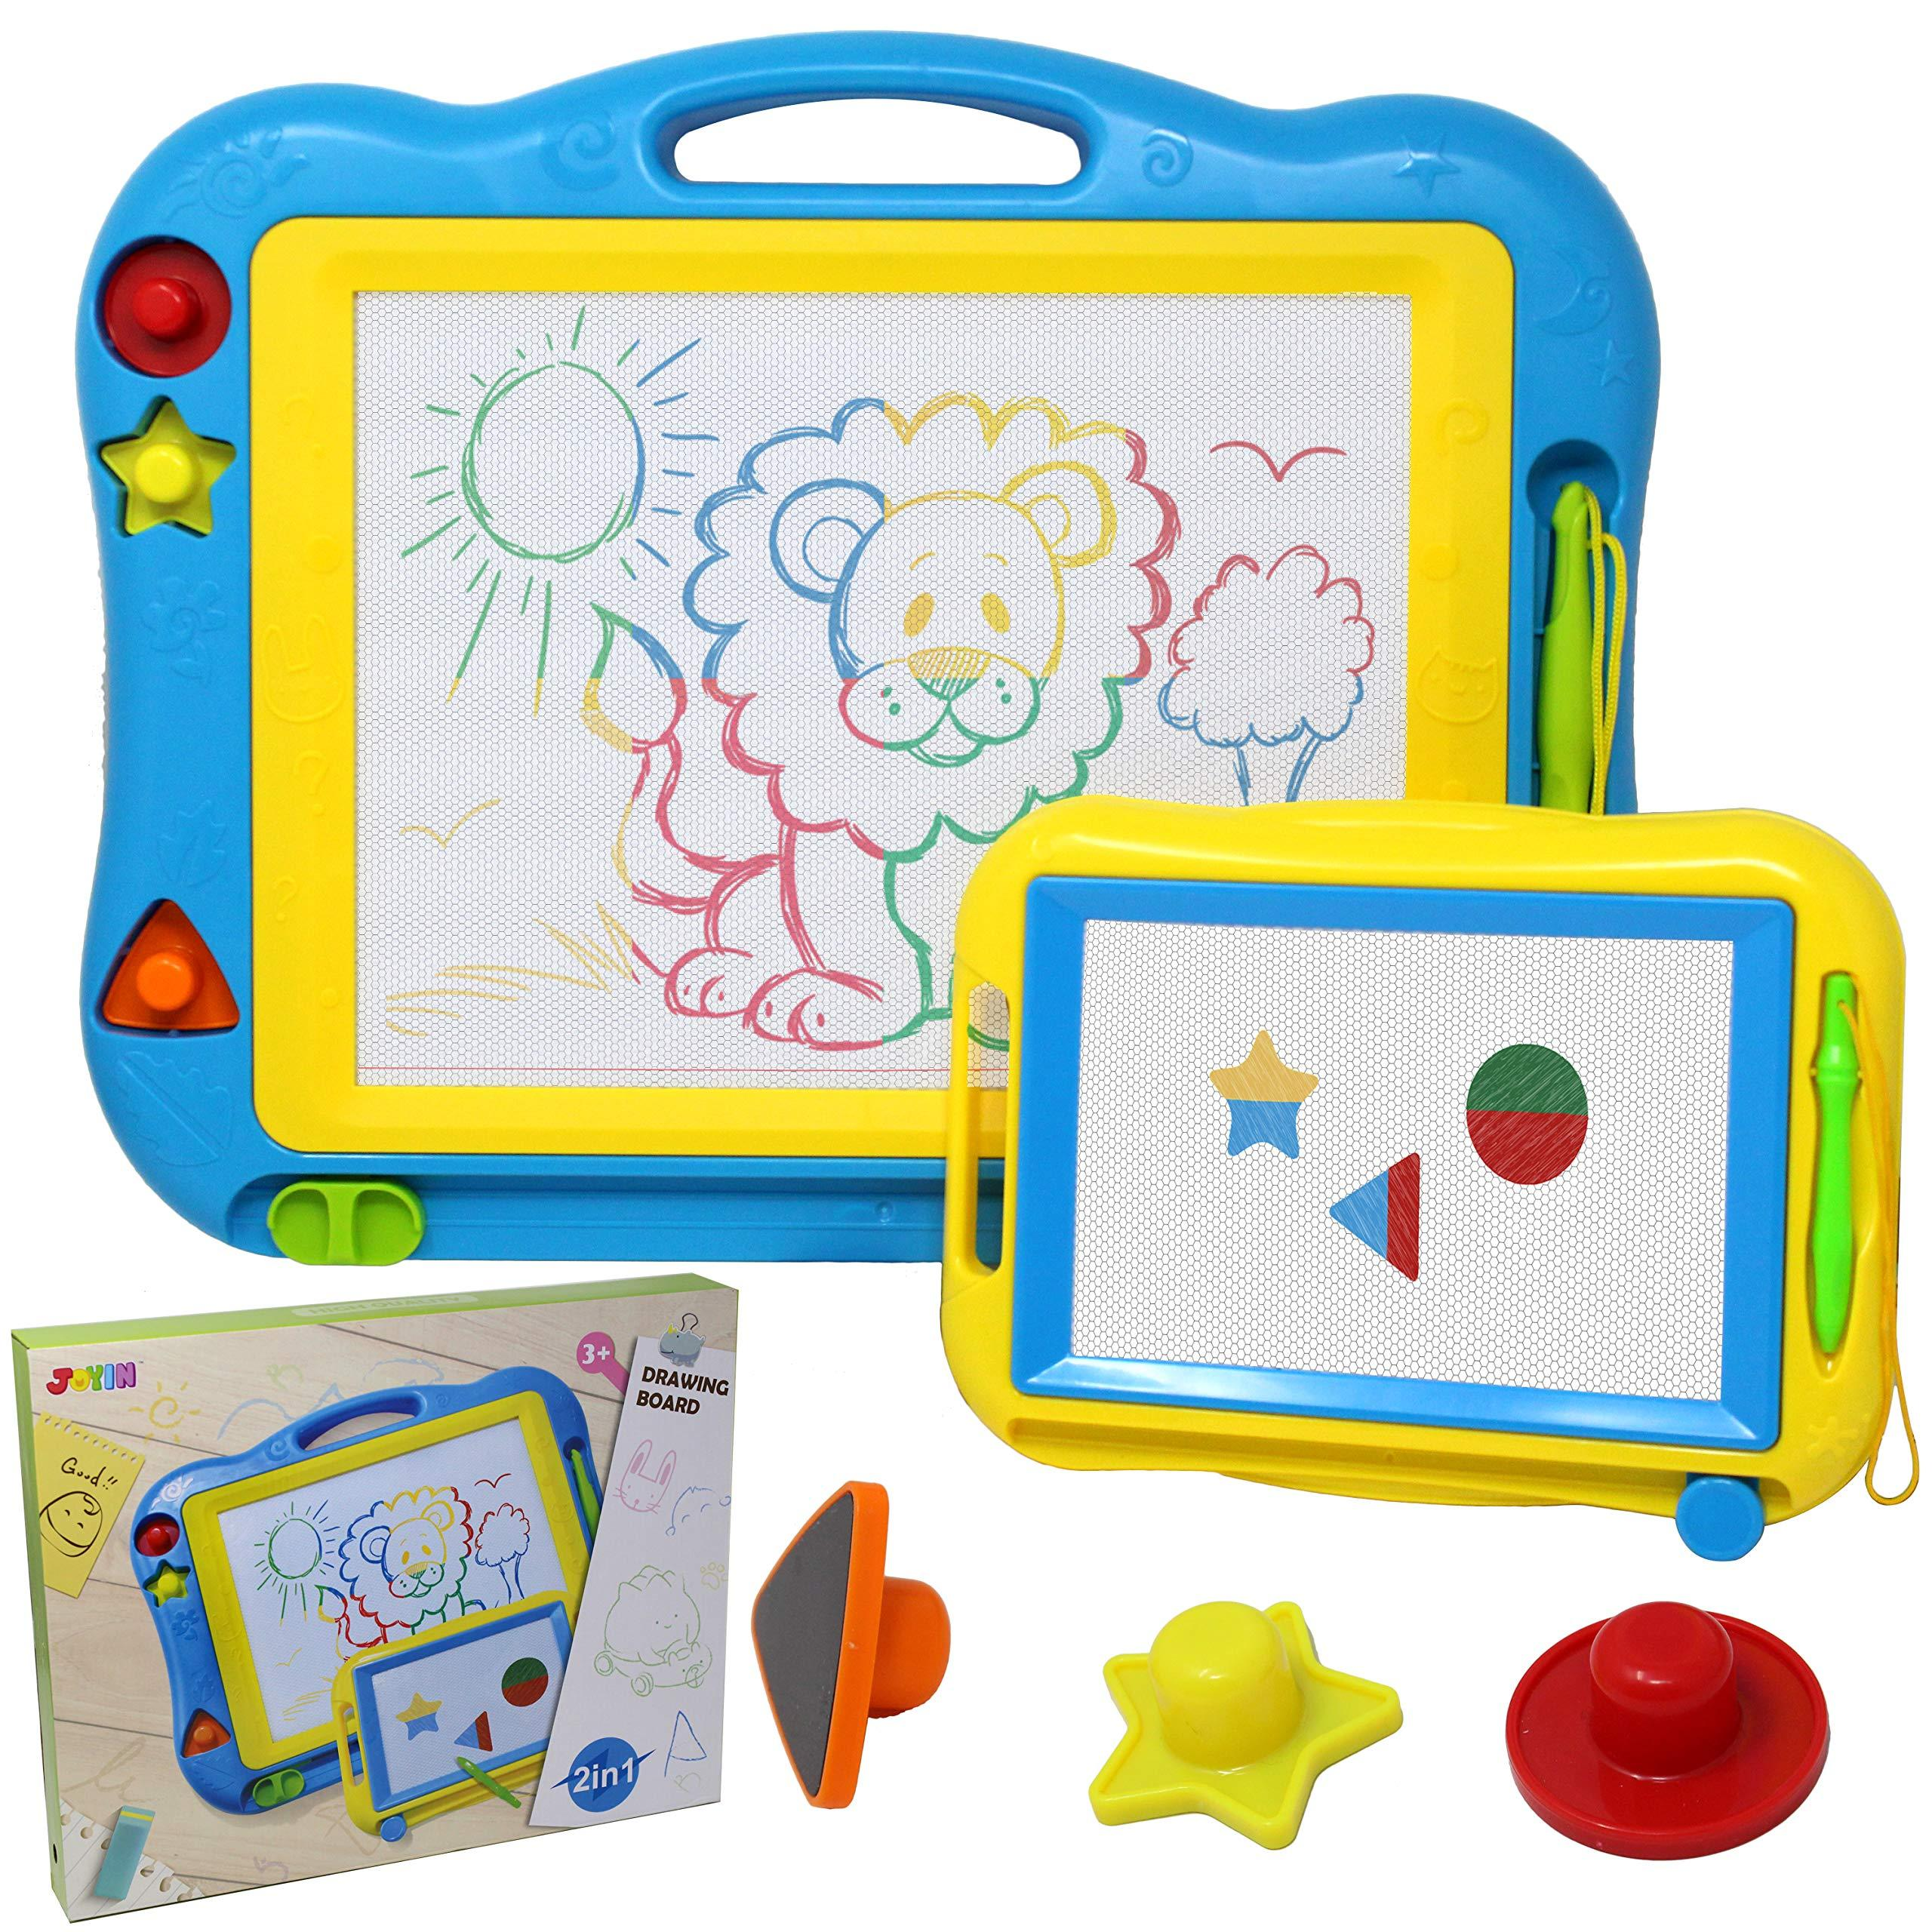 Blue Colorful Erasable Magna Doodle with Stamps Writing Painting Sketch Pad for Toddler Birthday Gift Idea Misscat Large Magnetic Drawing Board for Kids